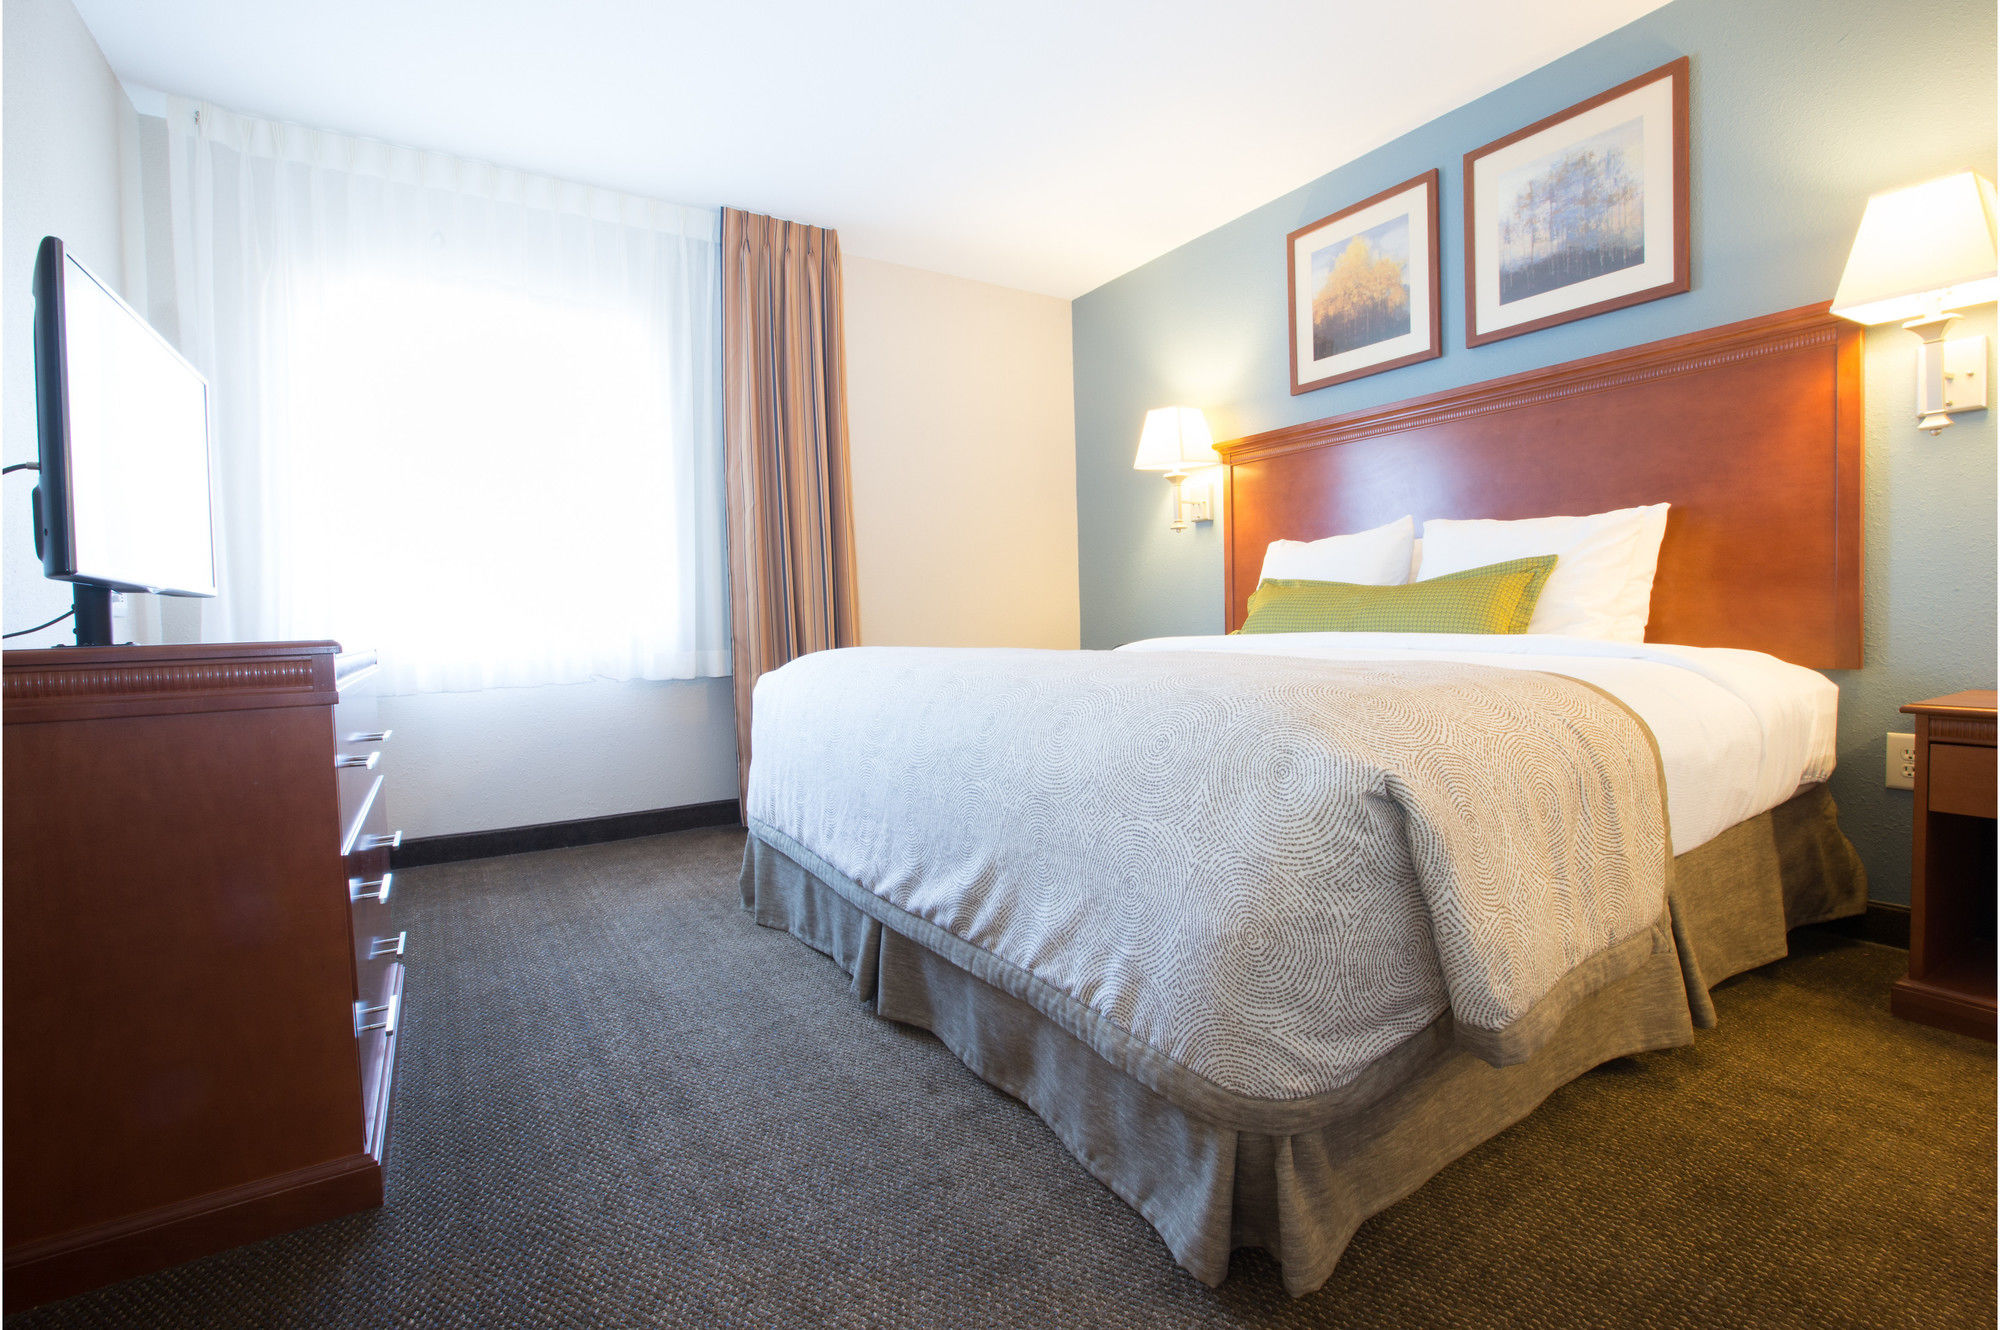 Candlewood Suites Rocky Mount in Rocky Mount, NC